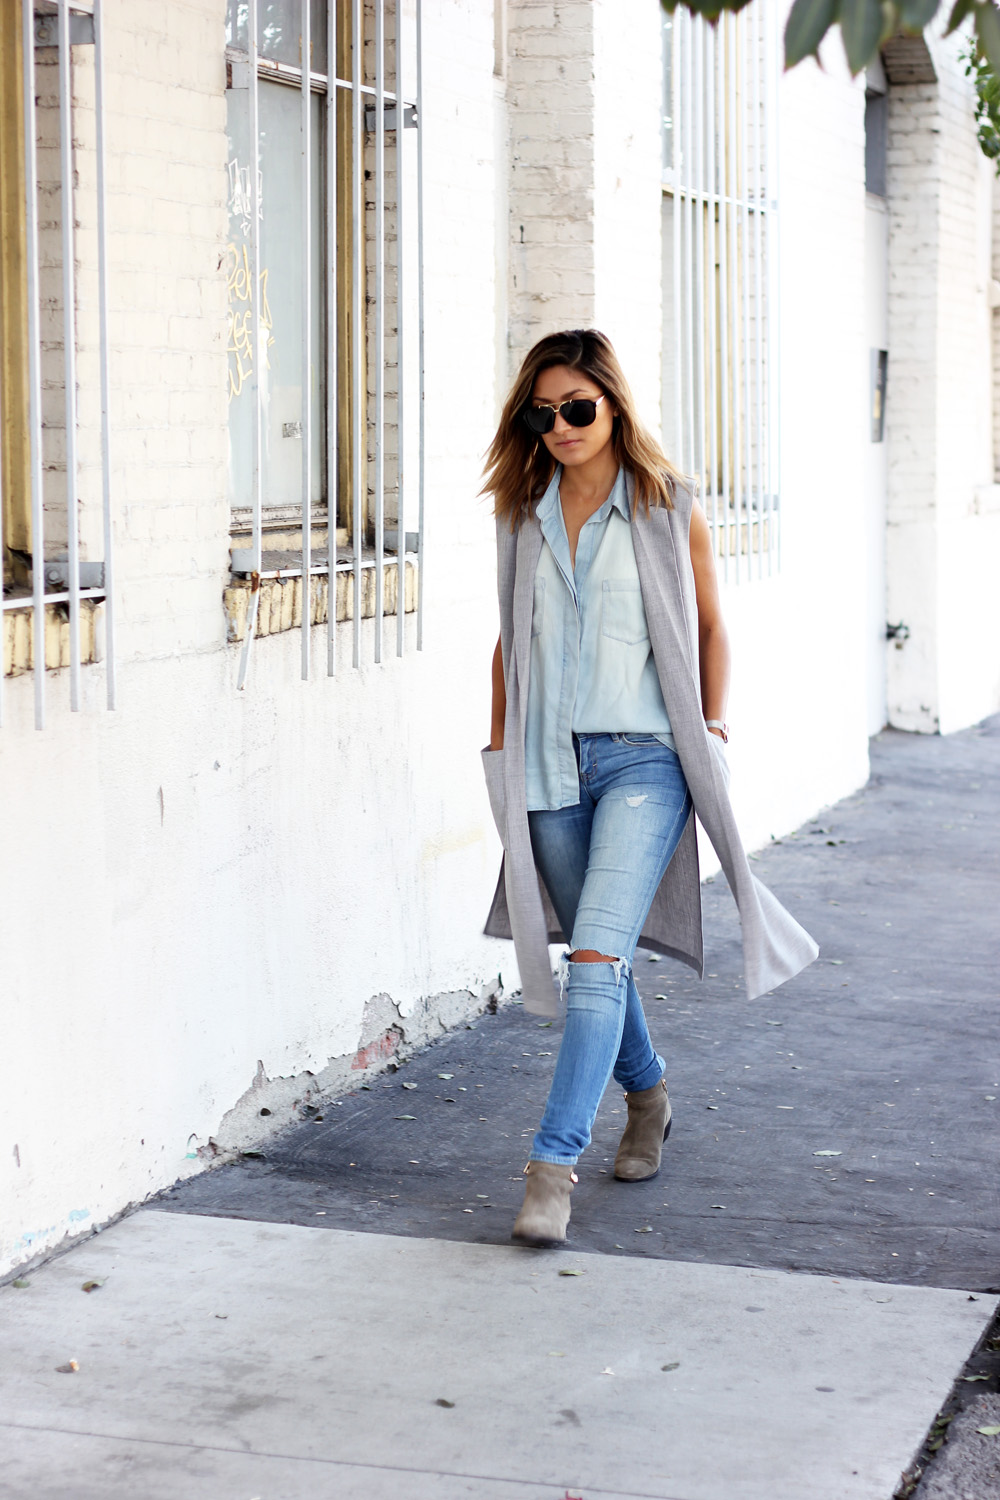 denim on denim, denim, grey, forever 21, coach, melrodstyle, stylelist, who what wear, refinery 29, latina blogger, la blogger, melrodstyle, ootd